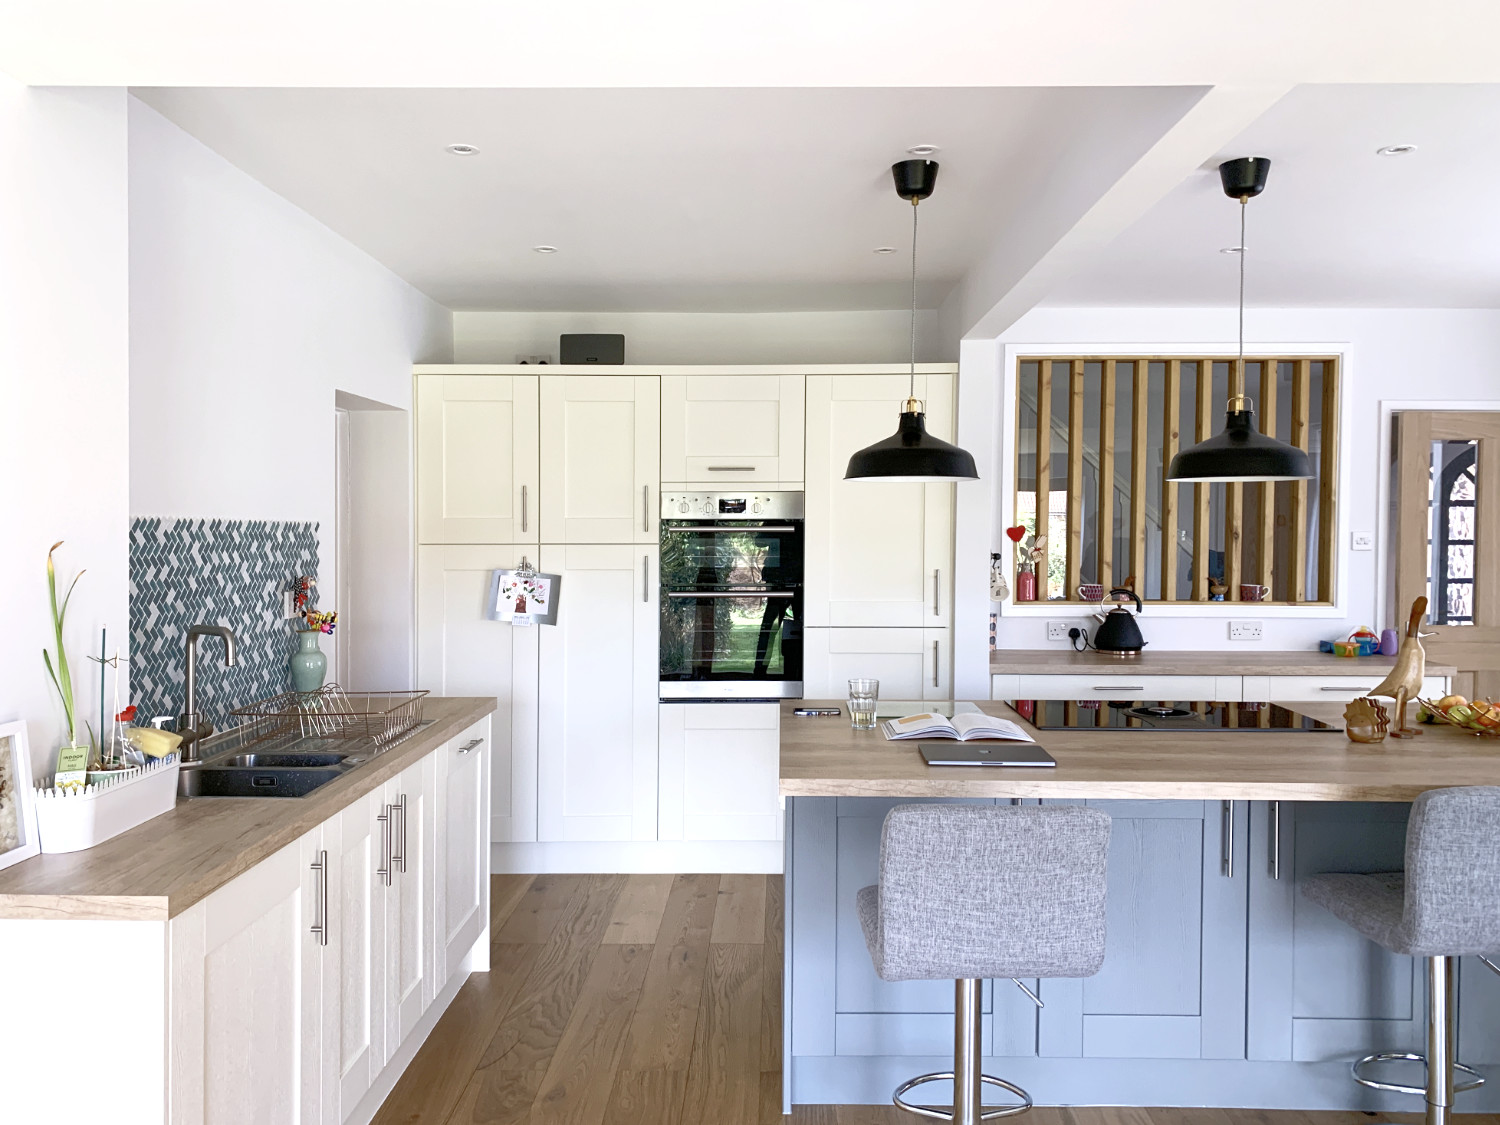 Open Plan Kitchen Diner And Playroom The General Architecture Company Ltd